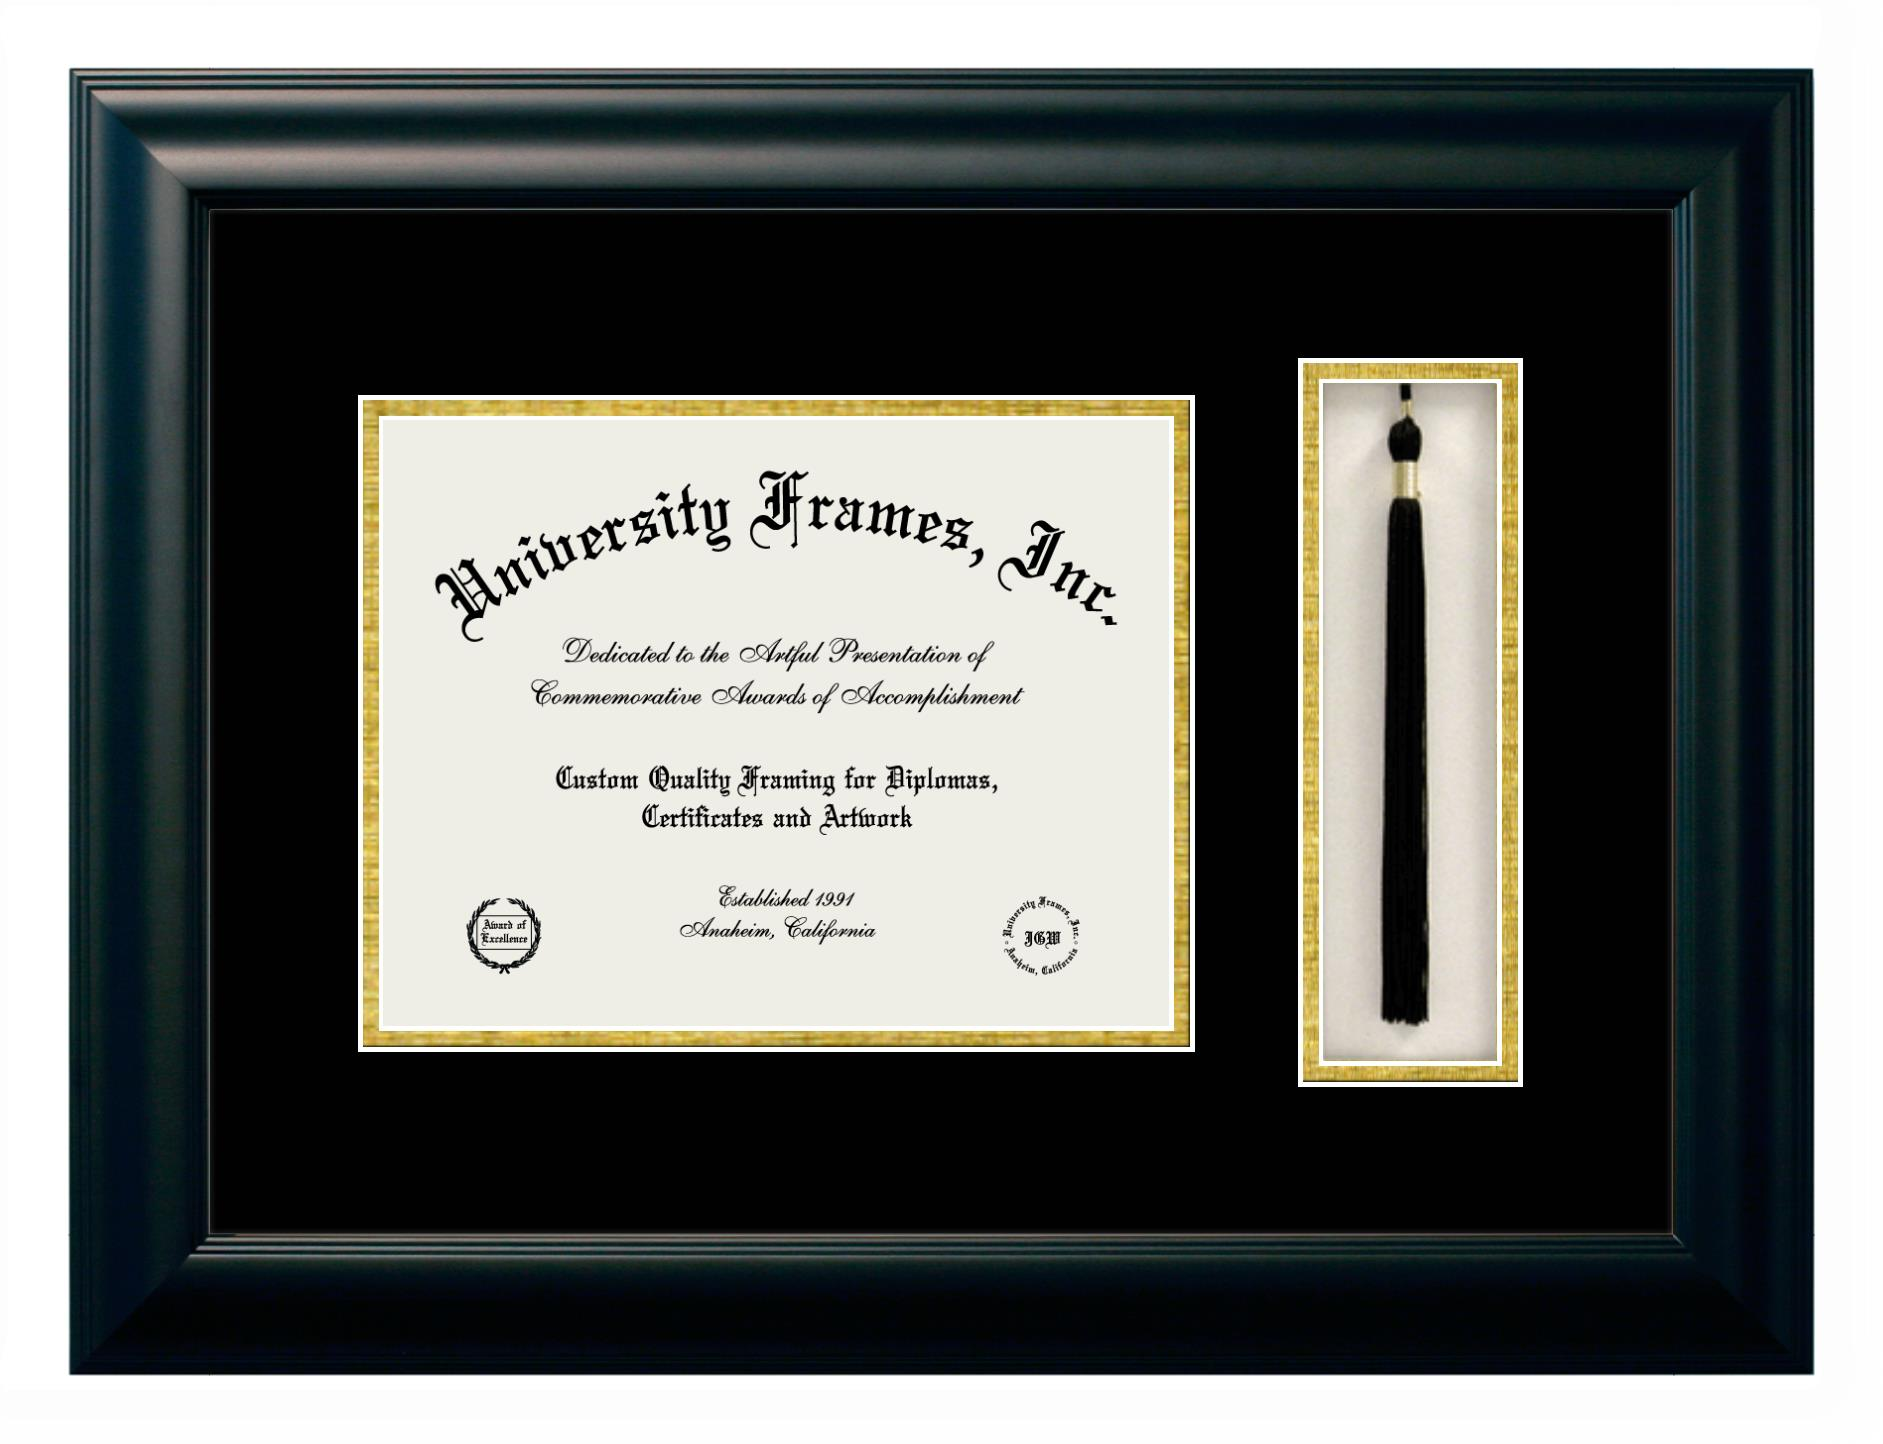 Diploma with Tassel Box Frame in Satin Black with Black & Gold Mats